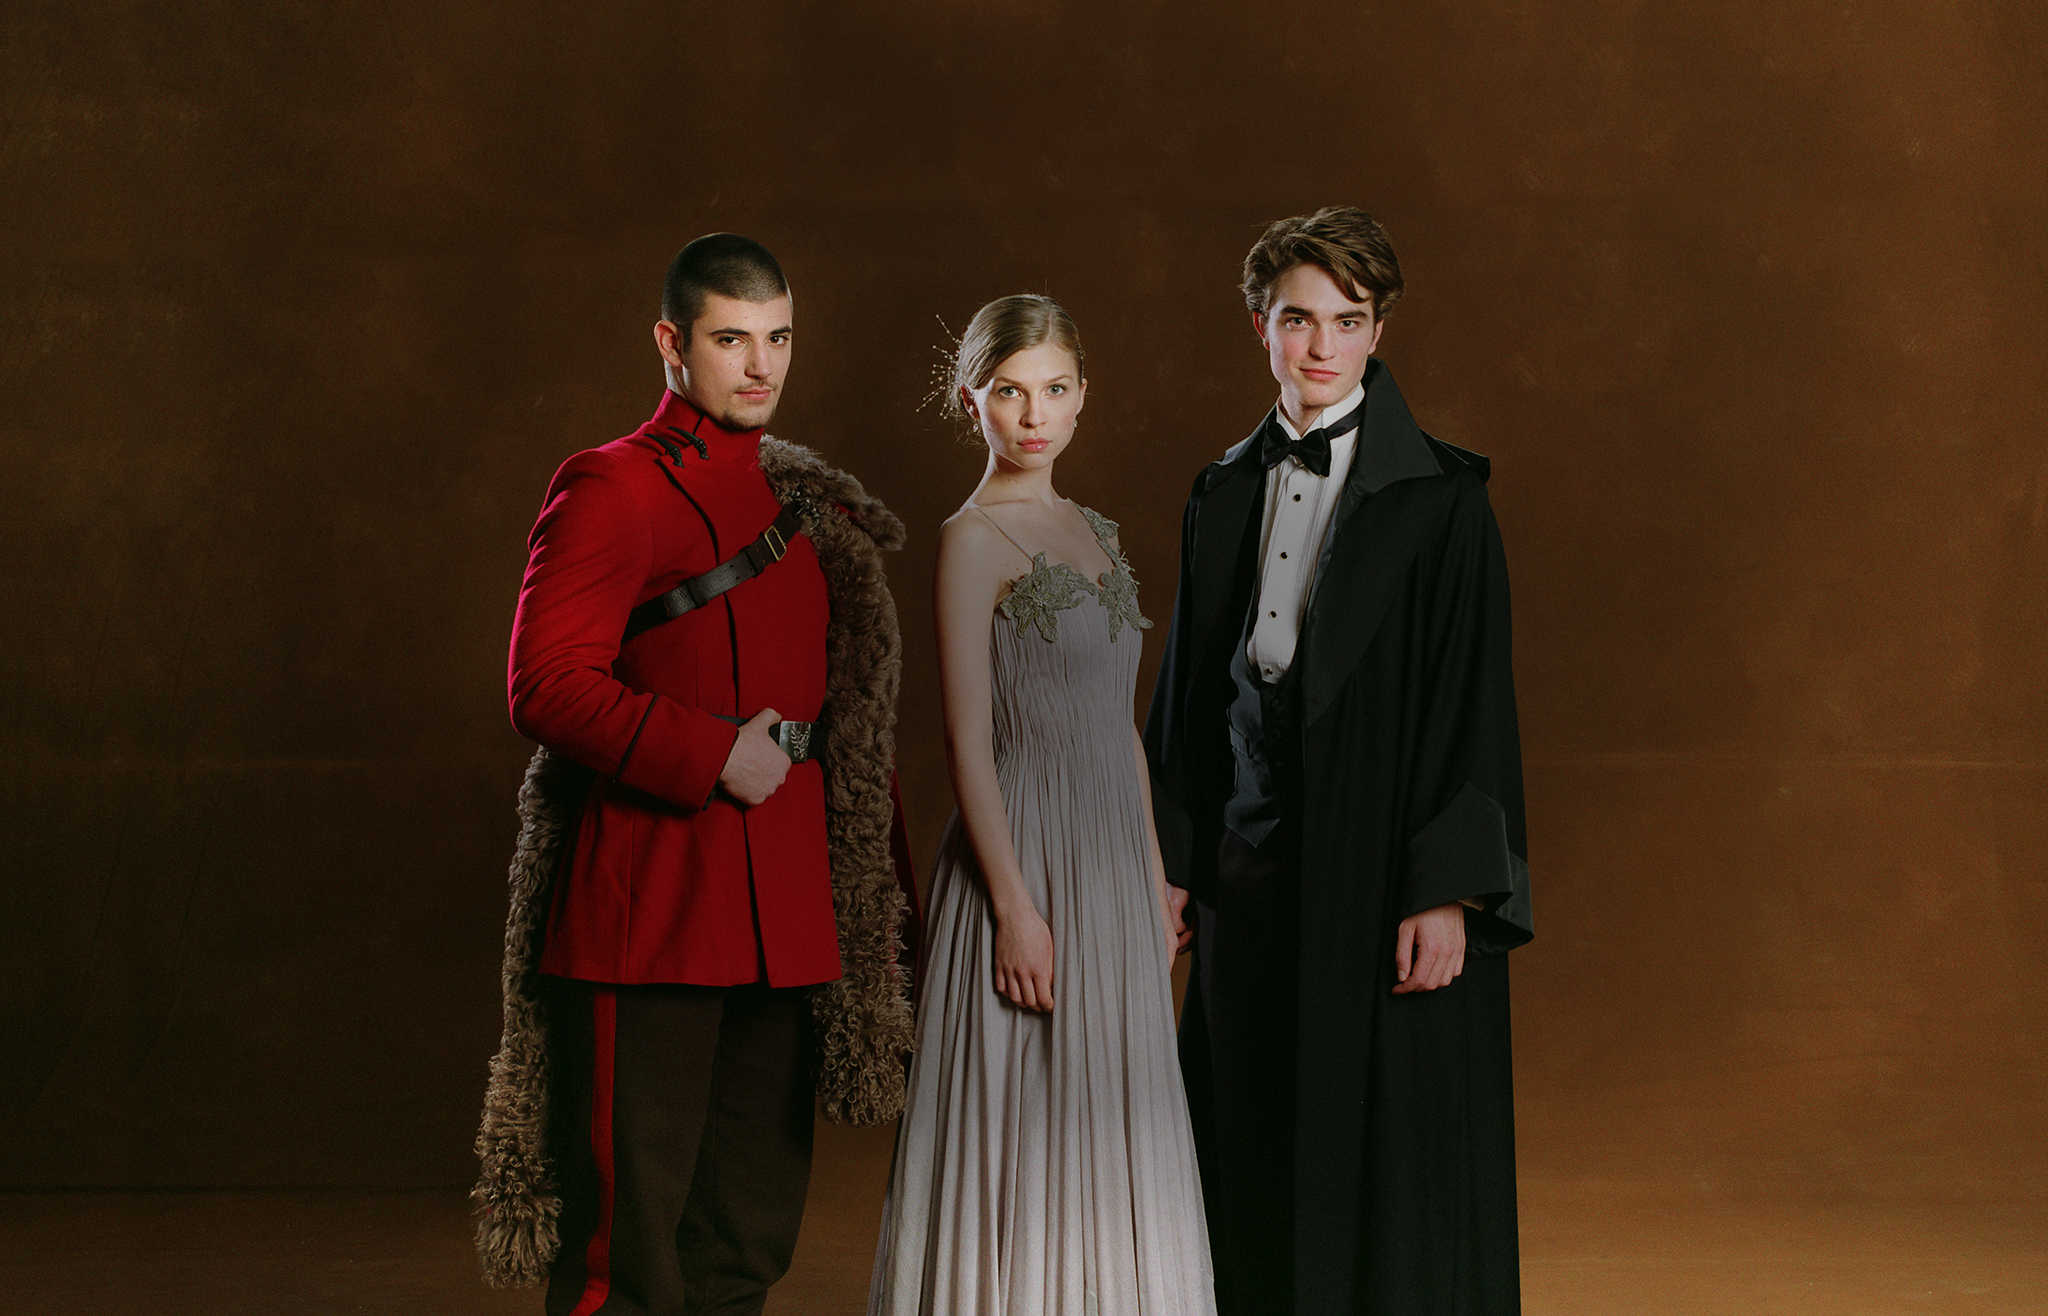 Hogwarts\u0027 haute couture The greatest fashion moments of the